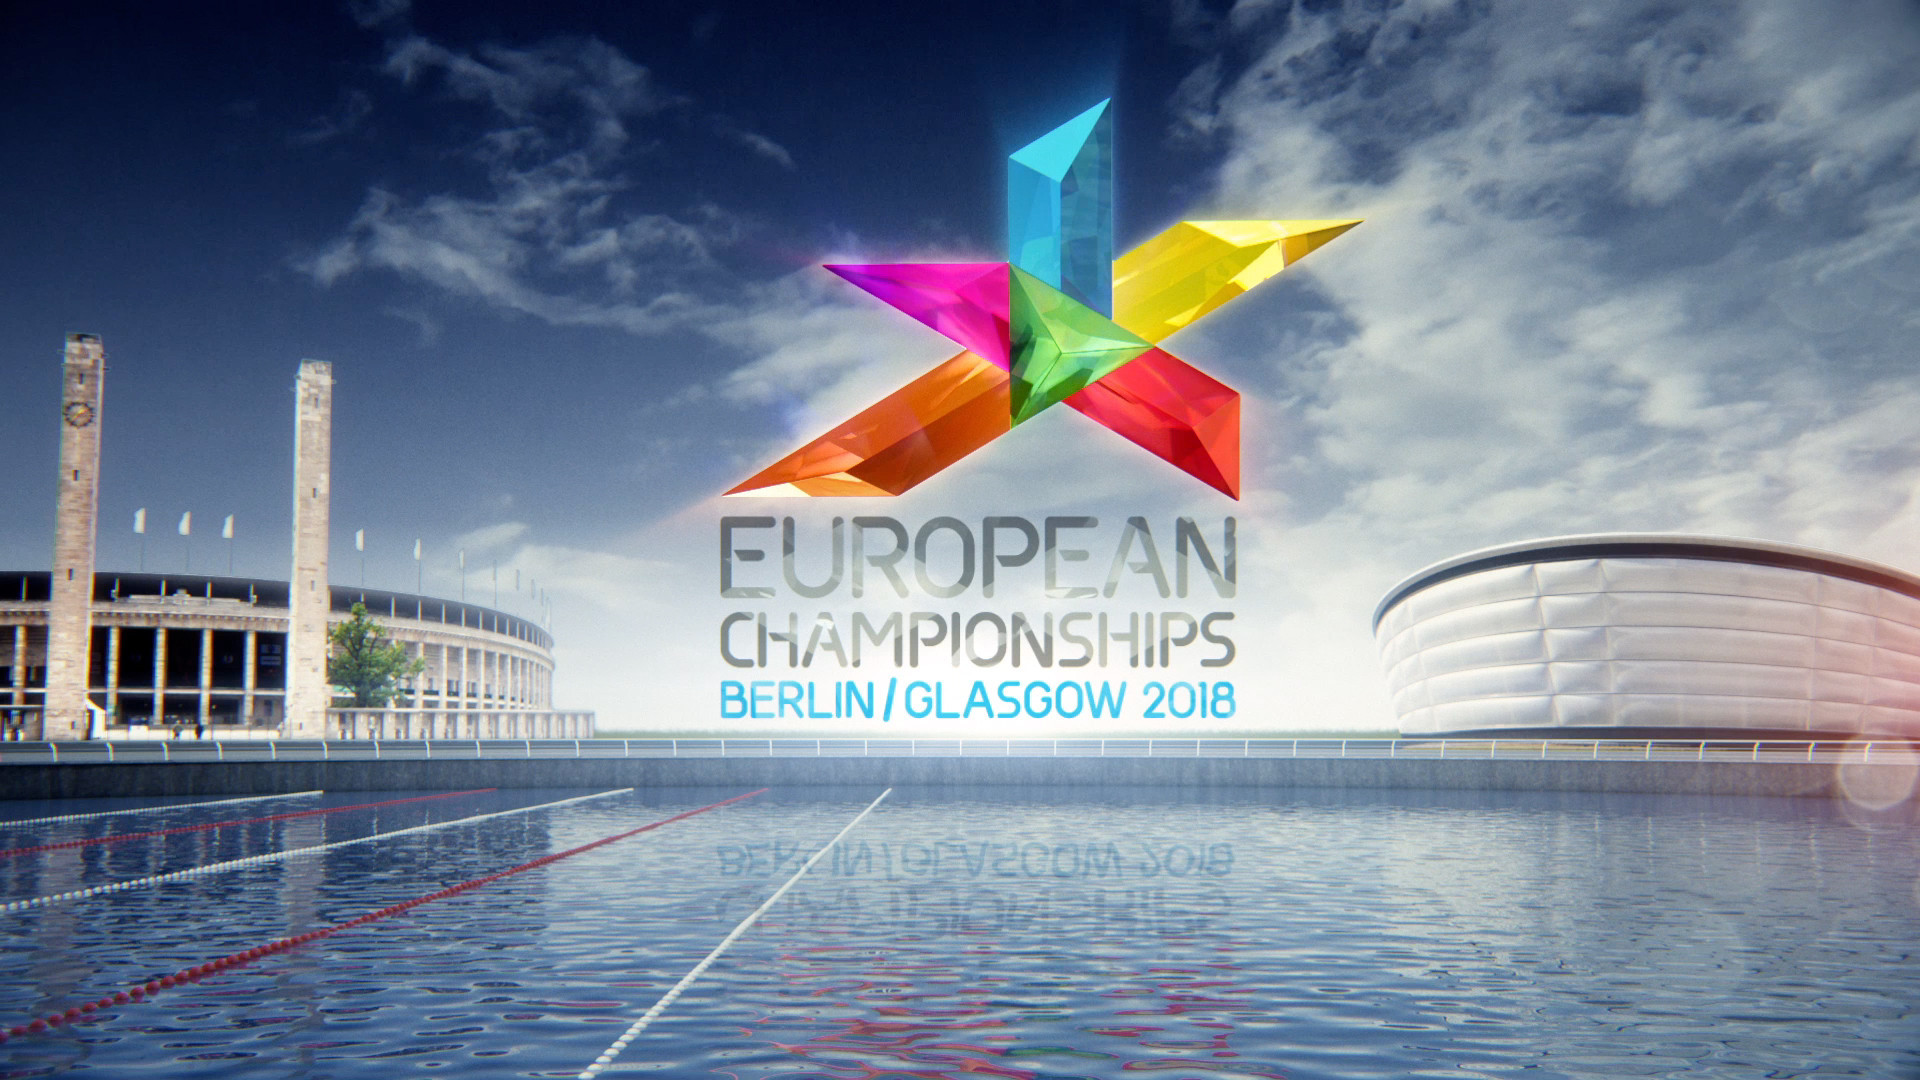 Exclusive: European Championships 2022 may also be shared between two cities